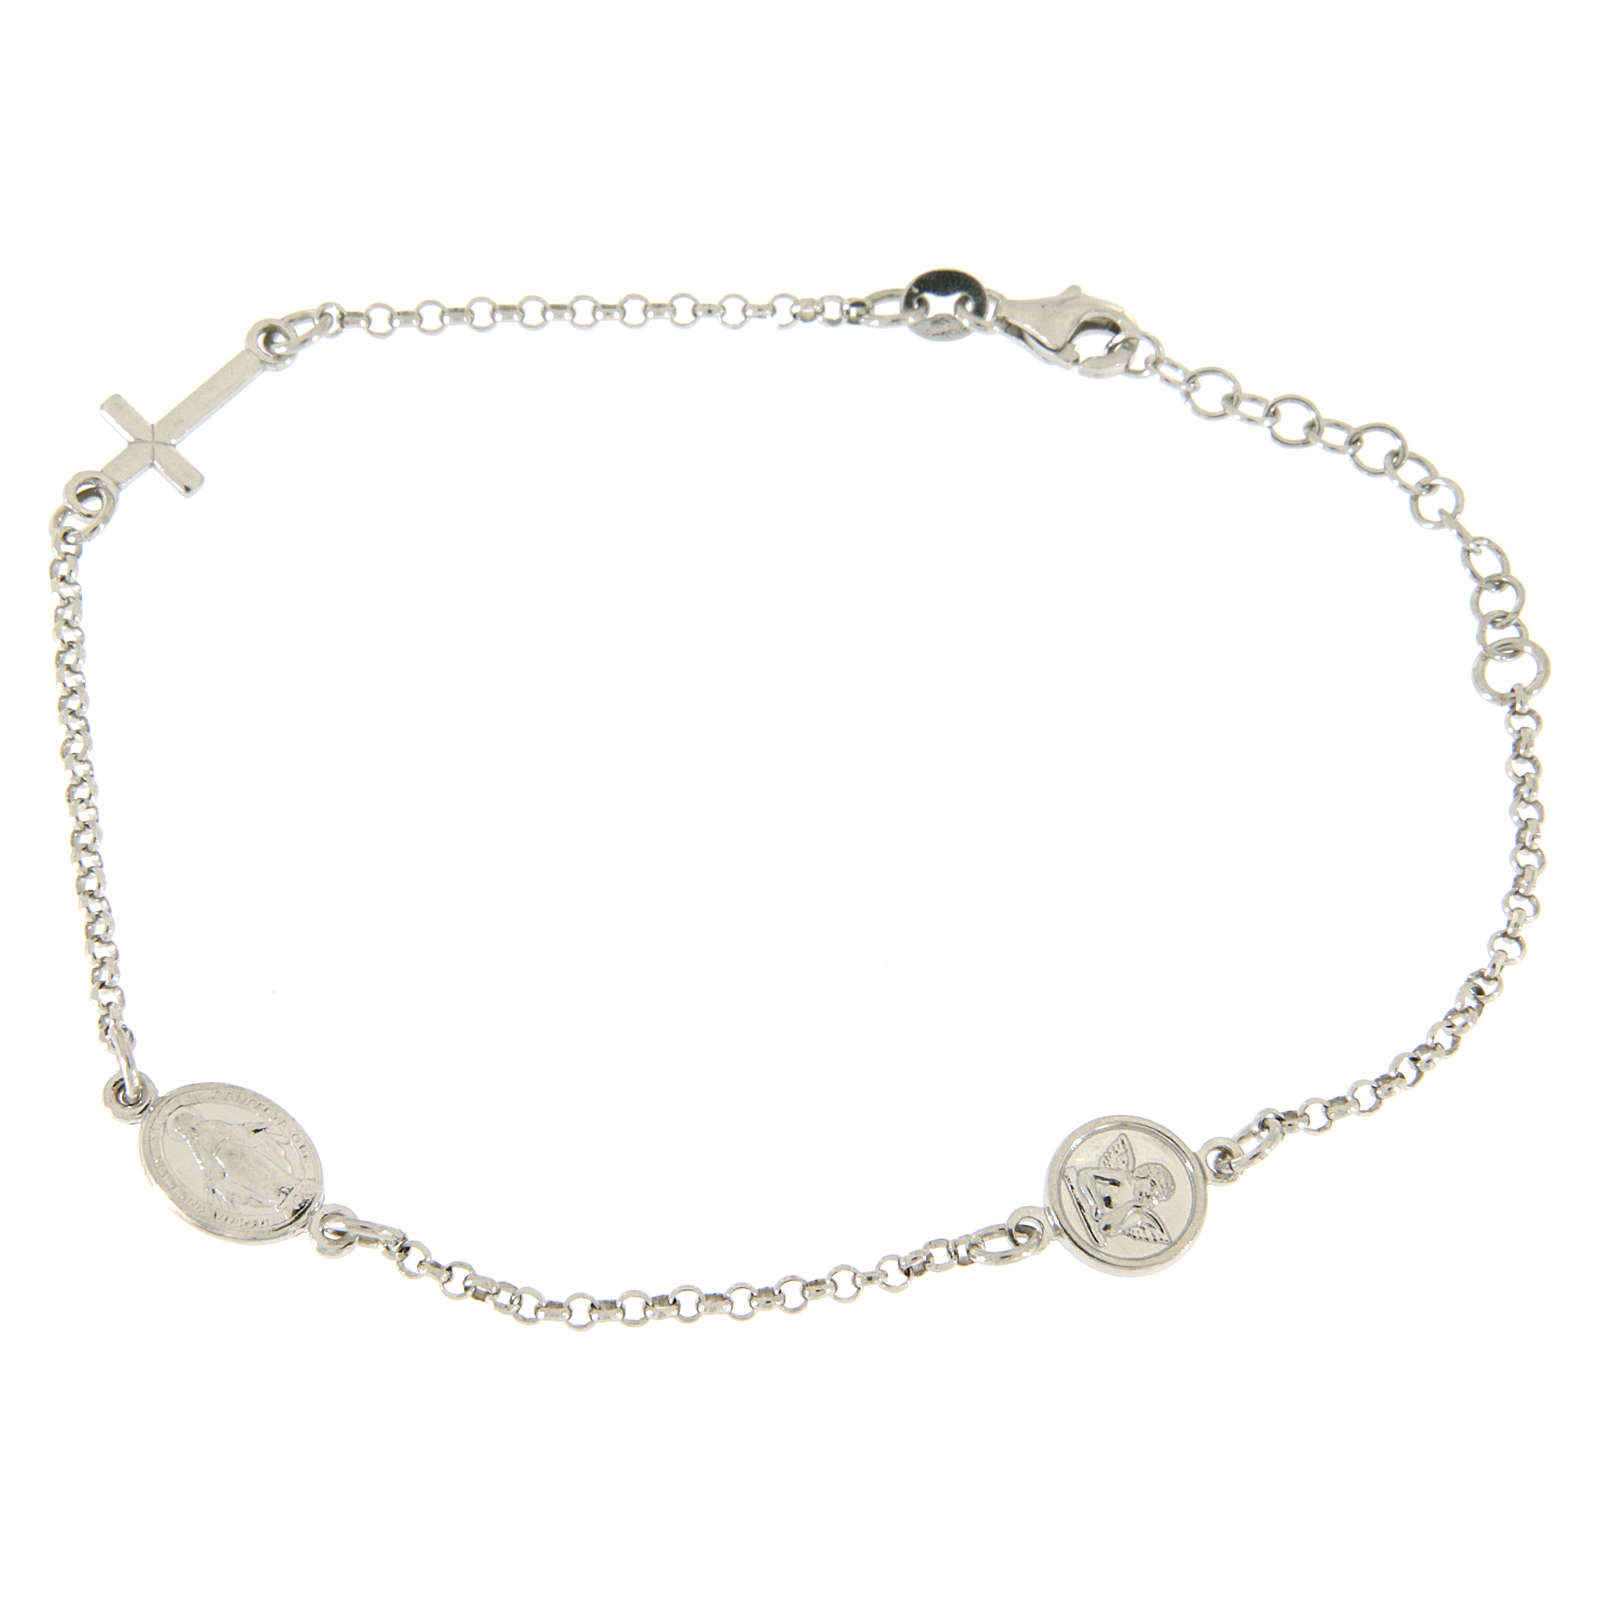 Bracelet with linear charms: medalet and cross in 925 sterling silver 4